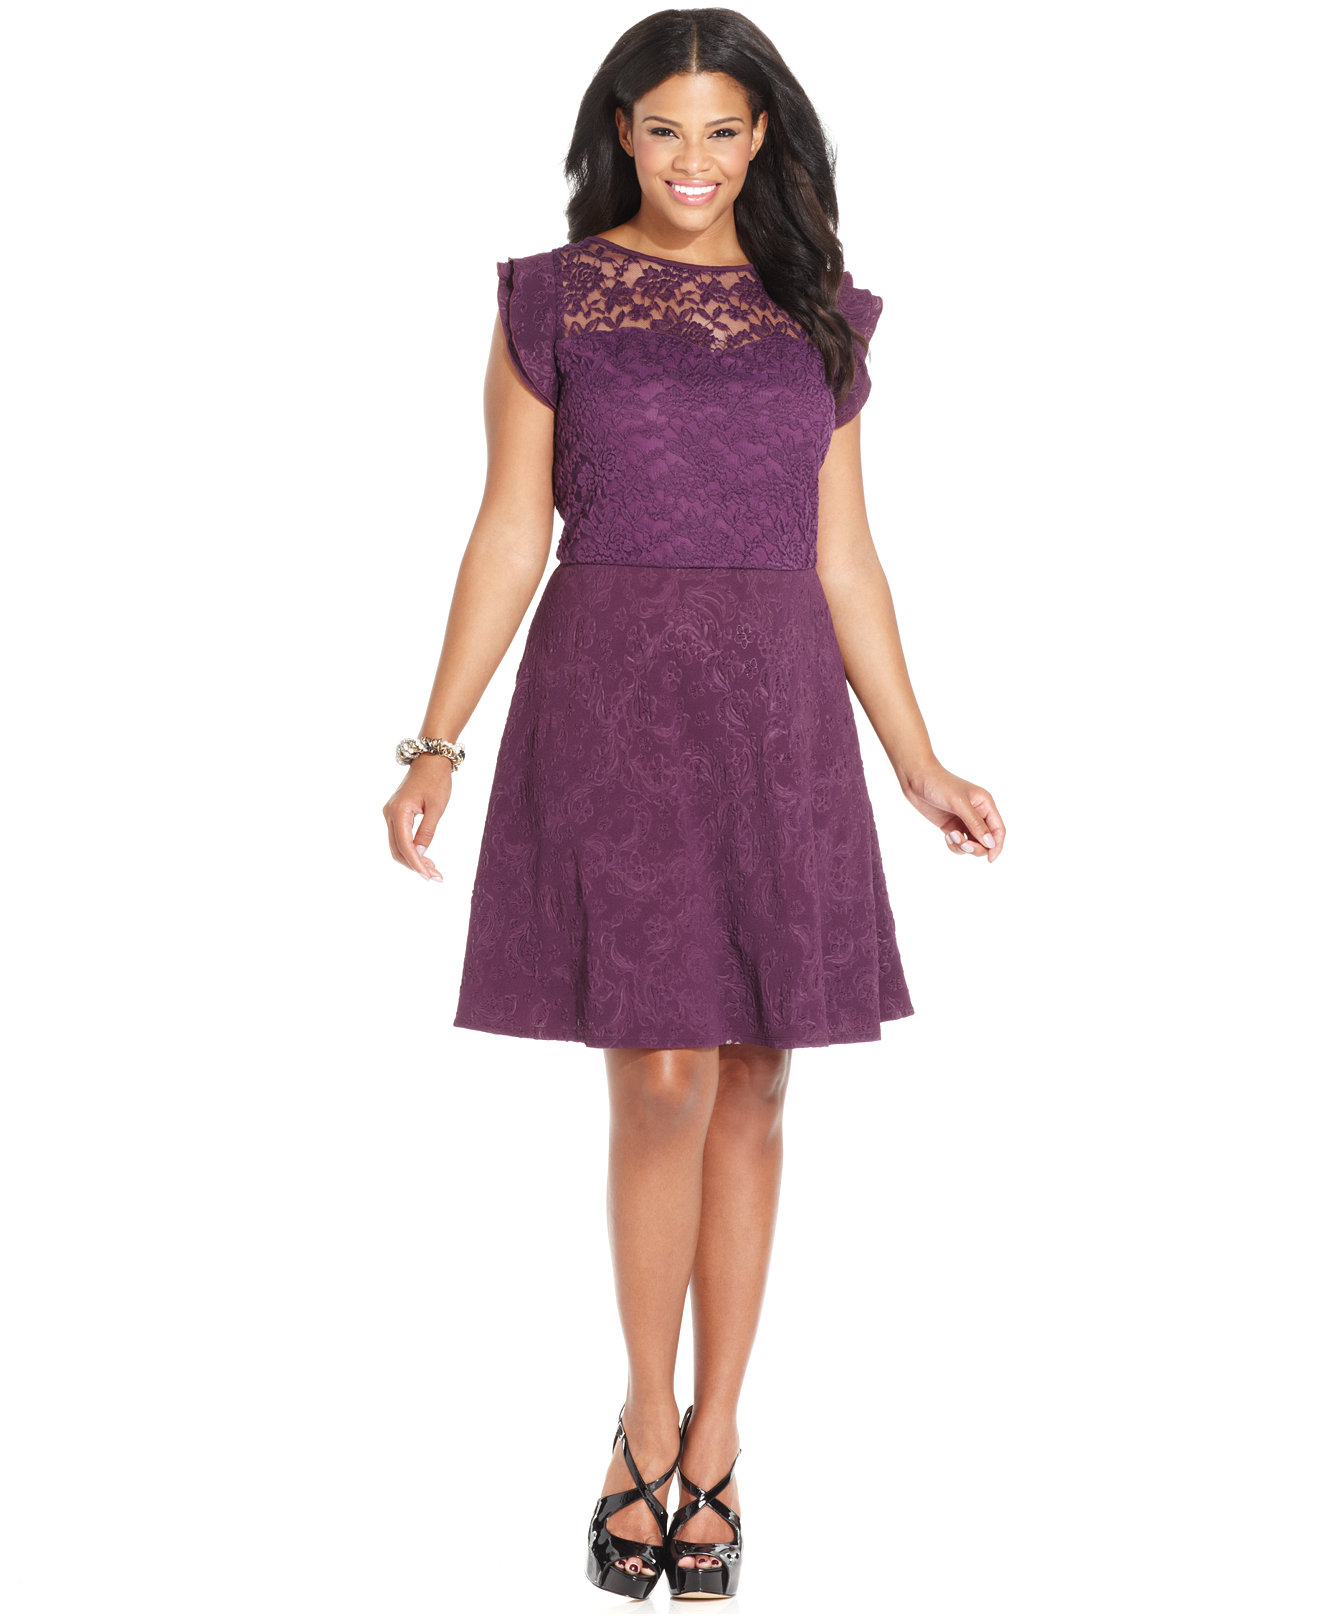 holiday party dress plus size birthday dresses and best choice always 30742